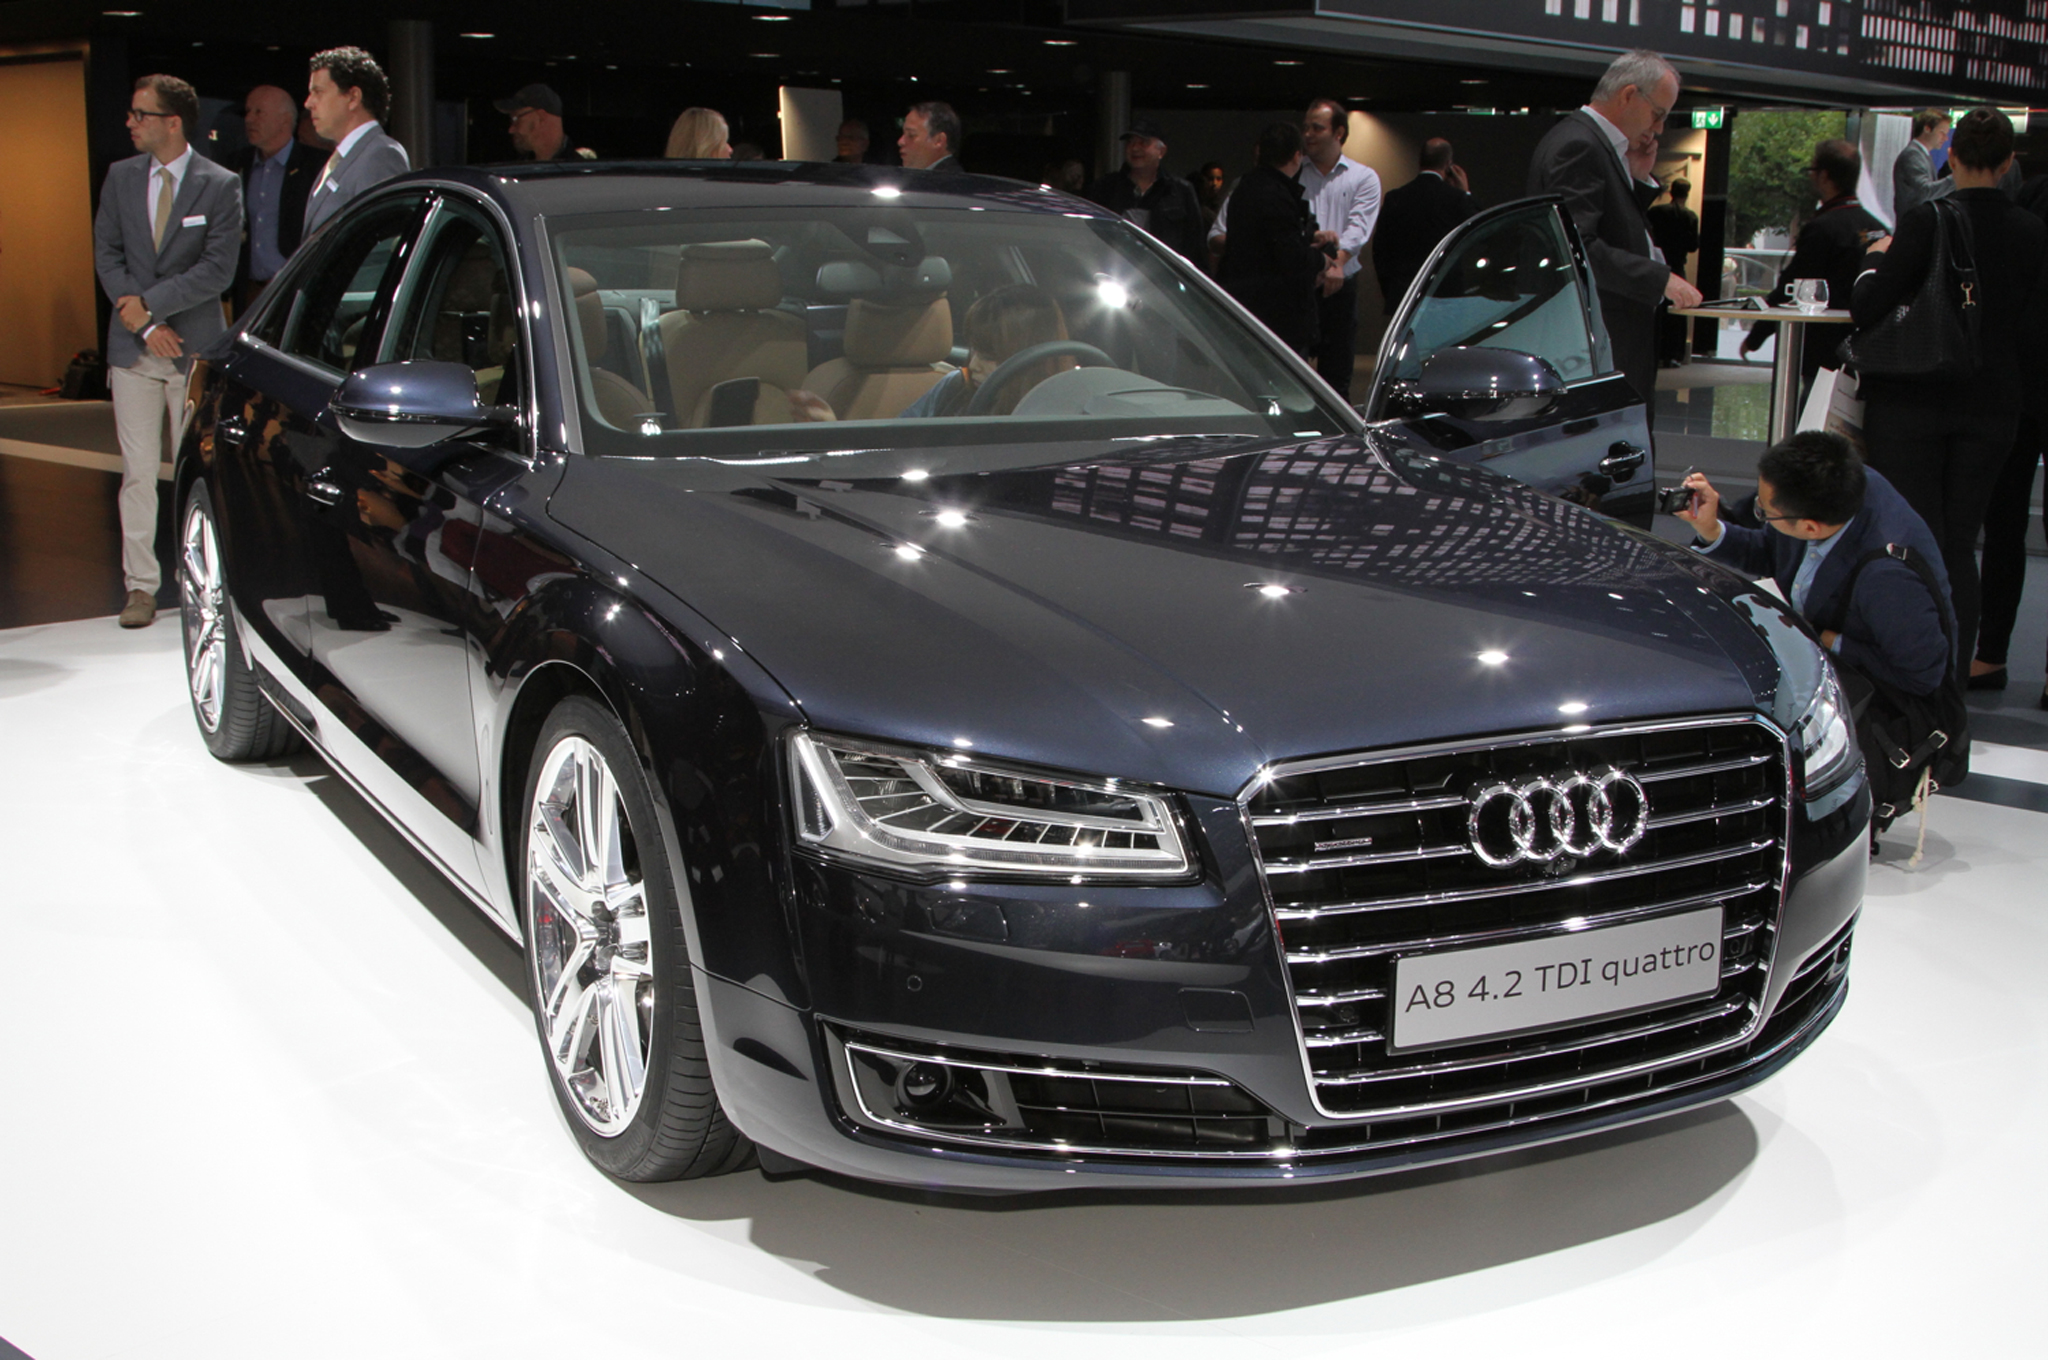 A8 Audi 2015 - it's time to move forward #9